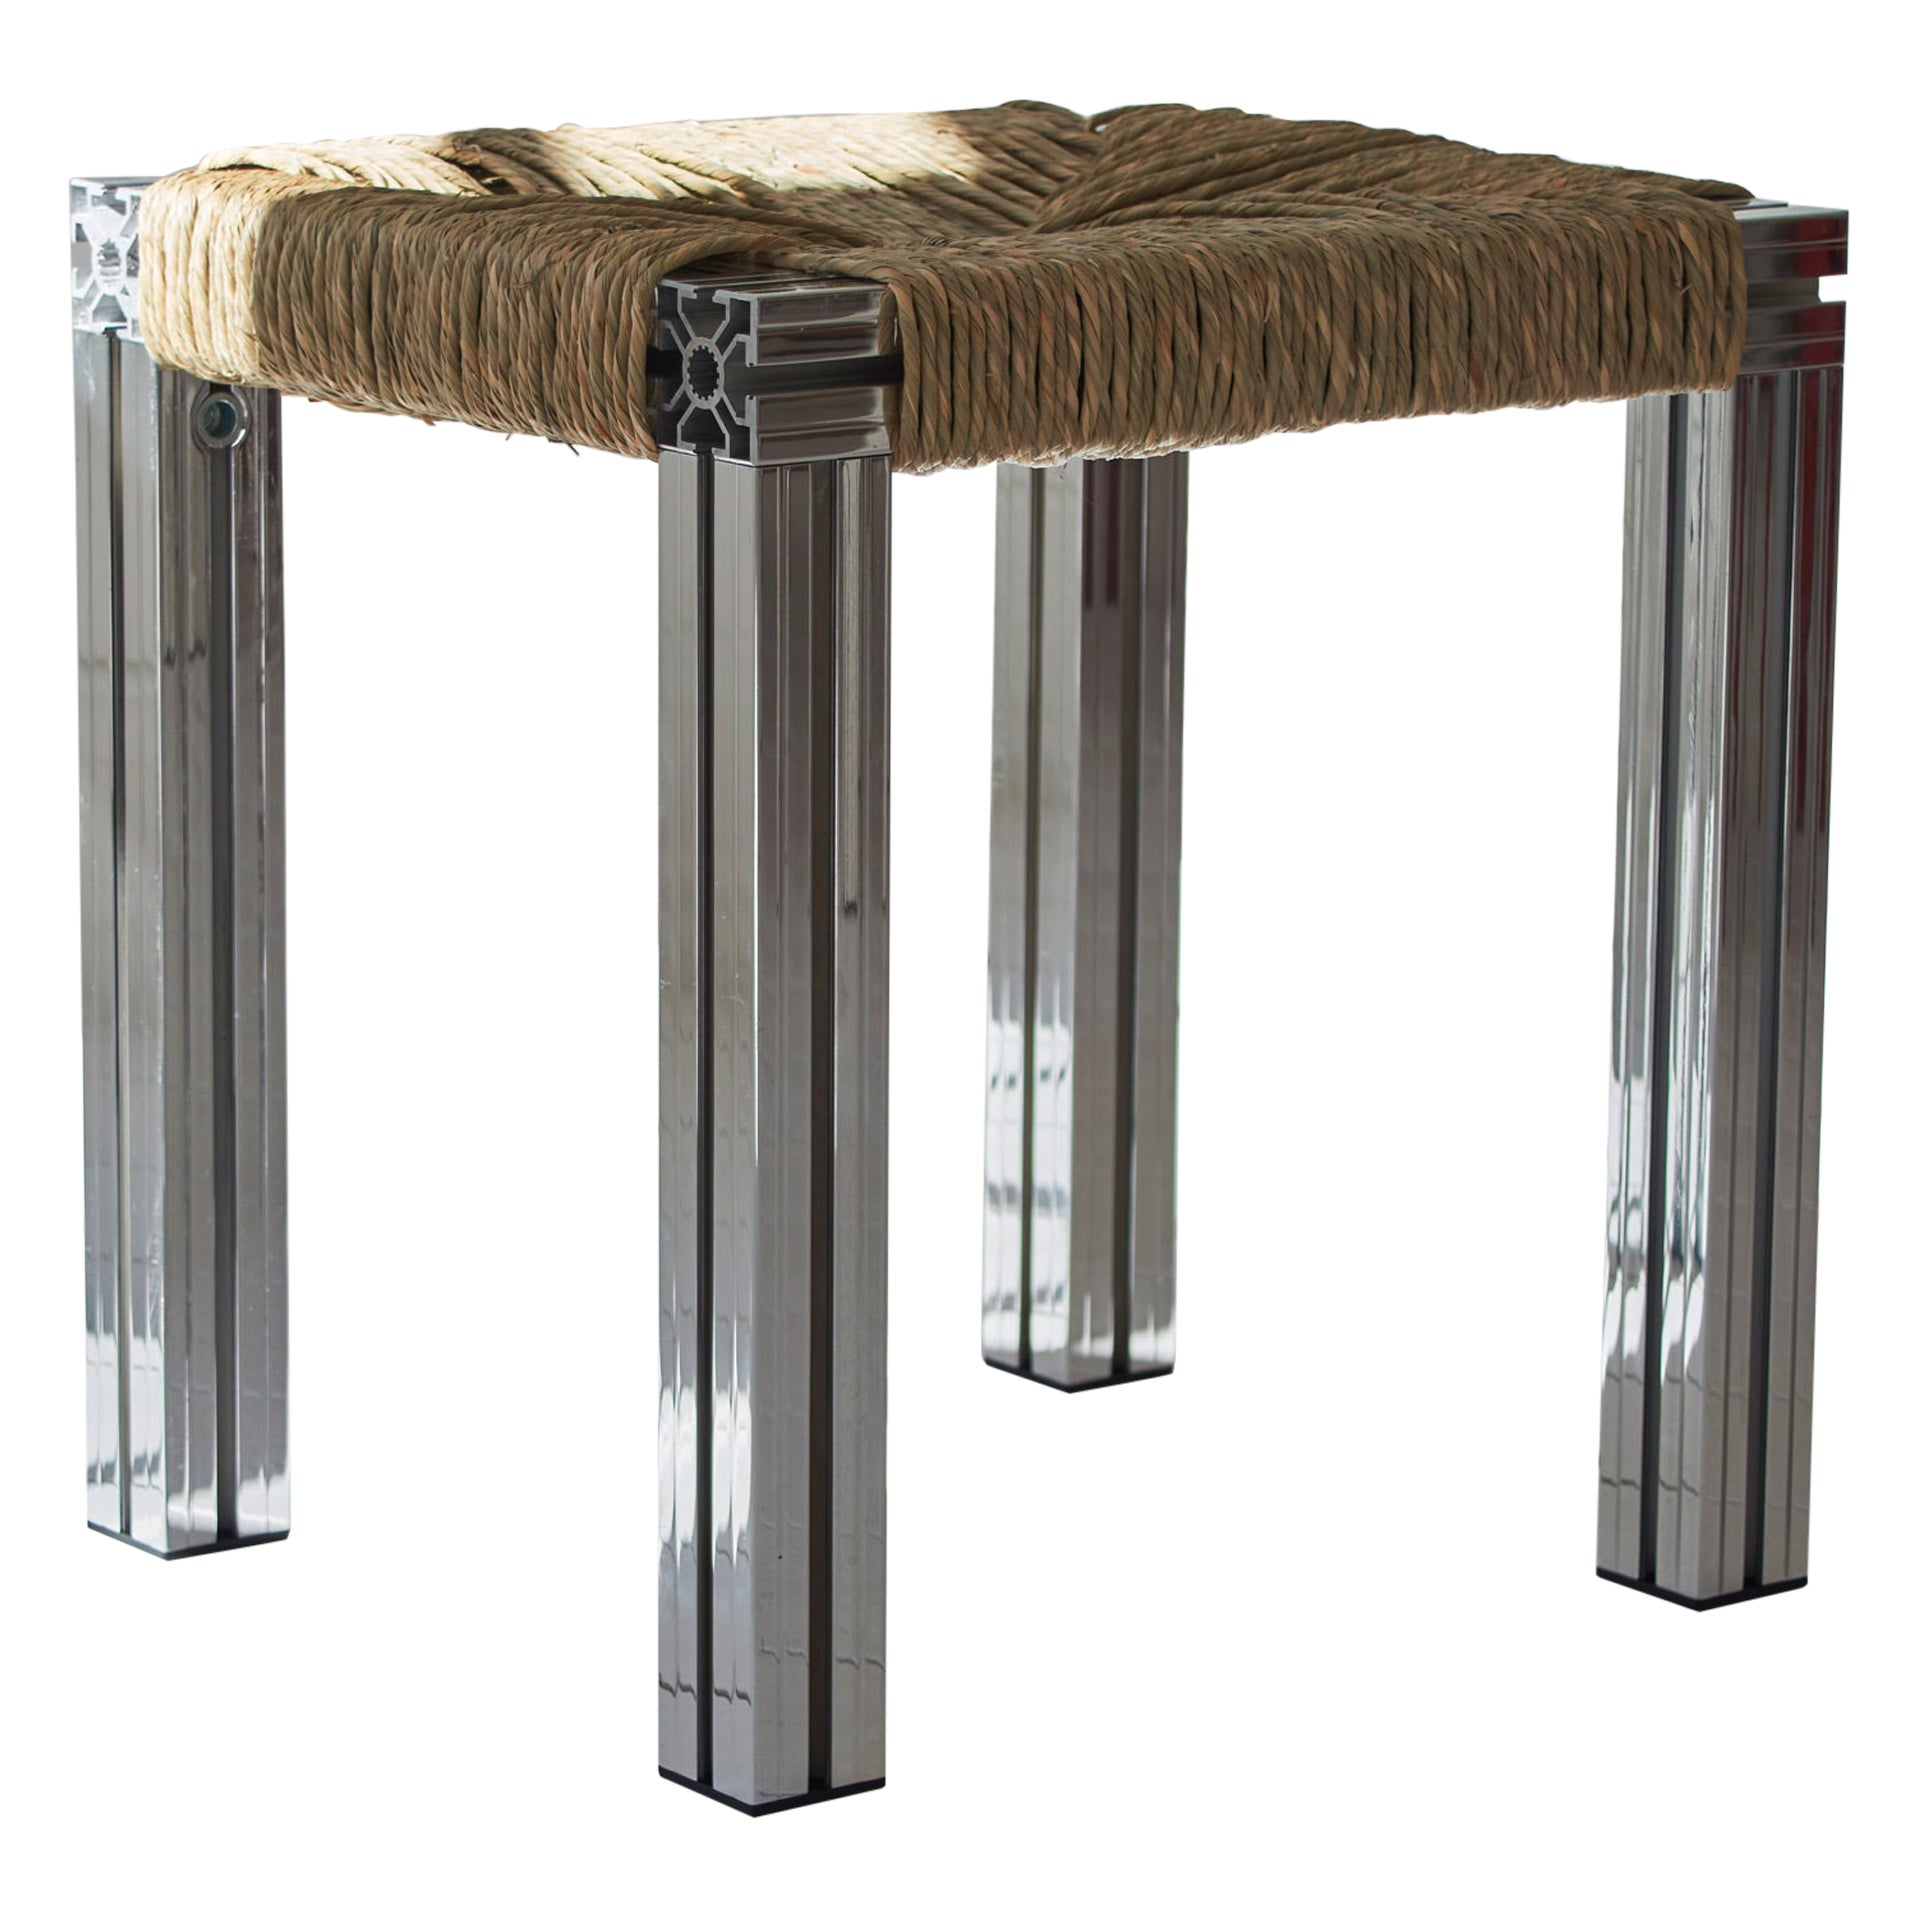 Polished Aluminium Stool with Reel Rush Seating from Anodised Wicker Collection